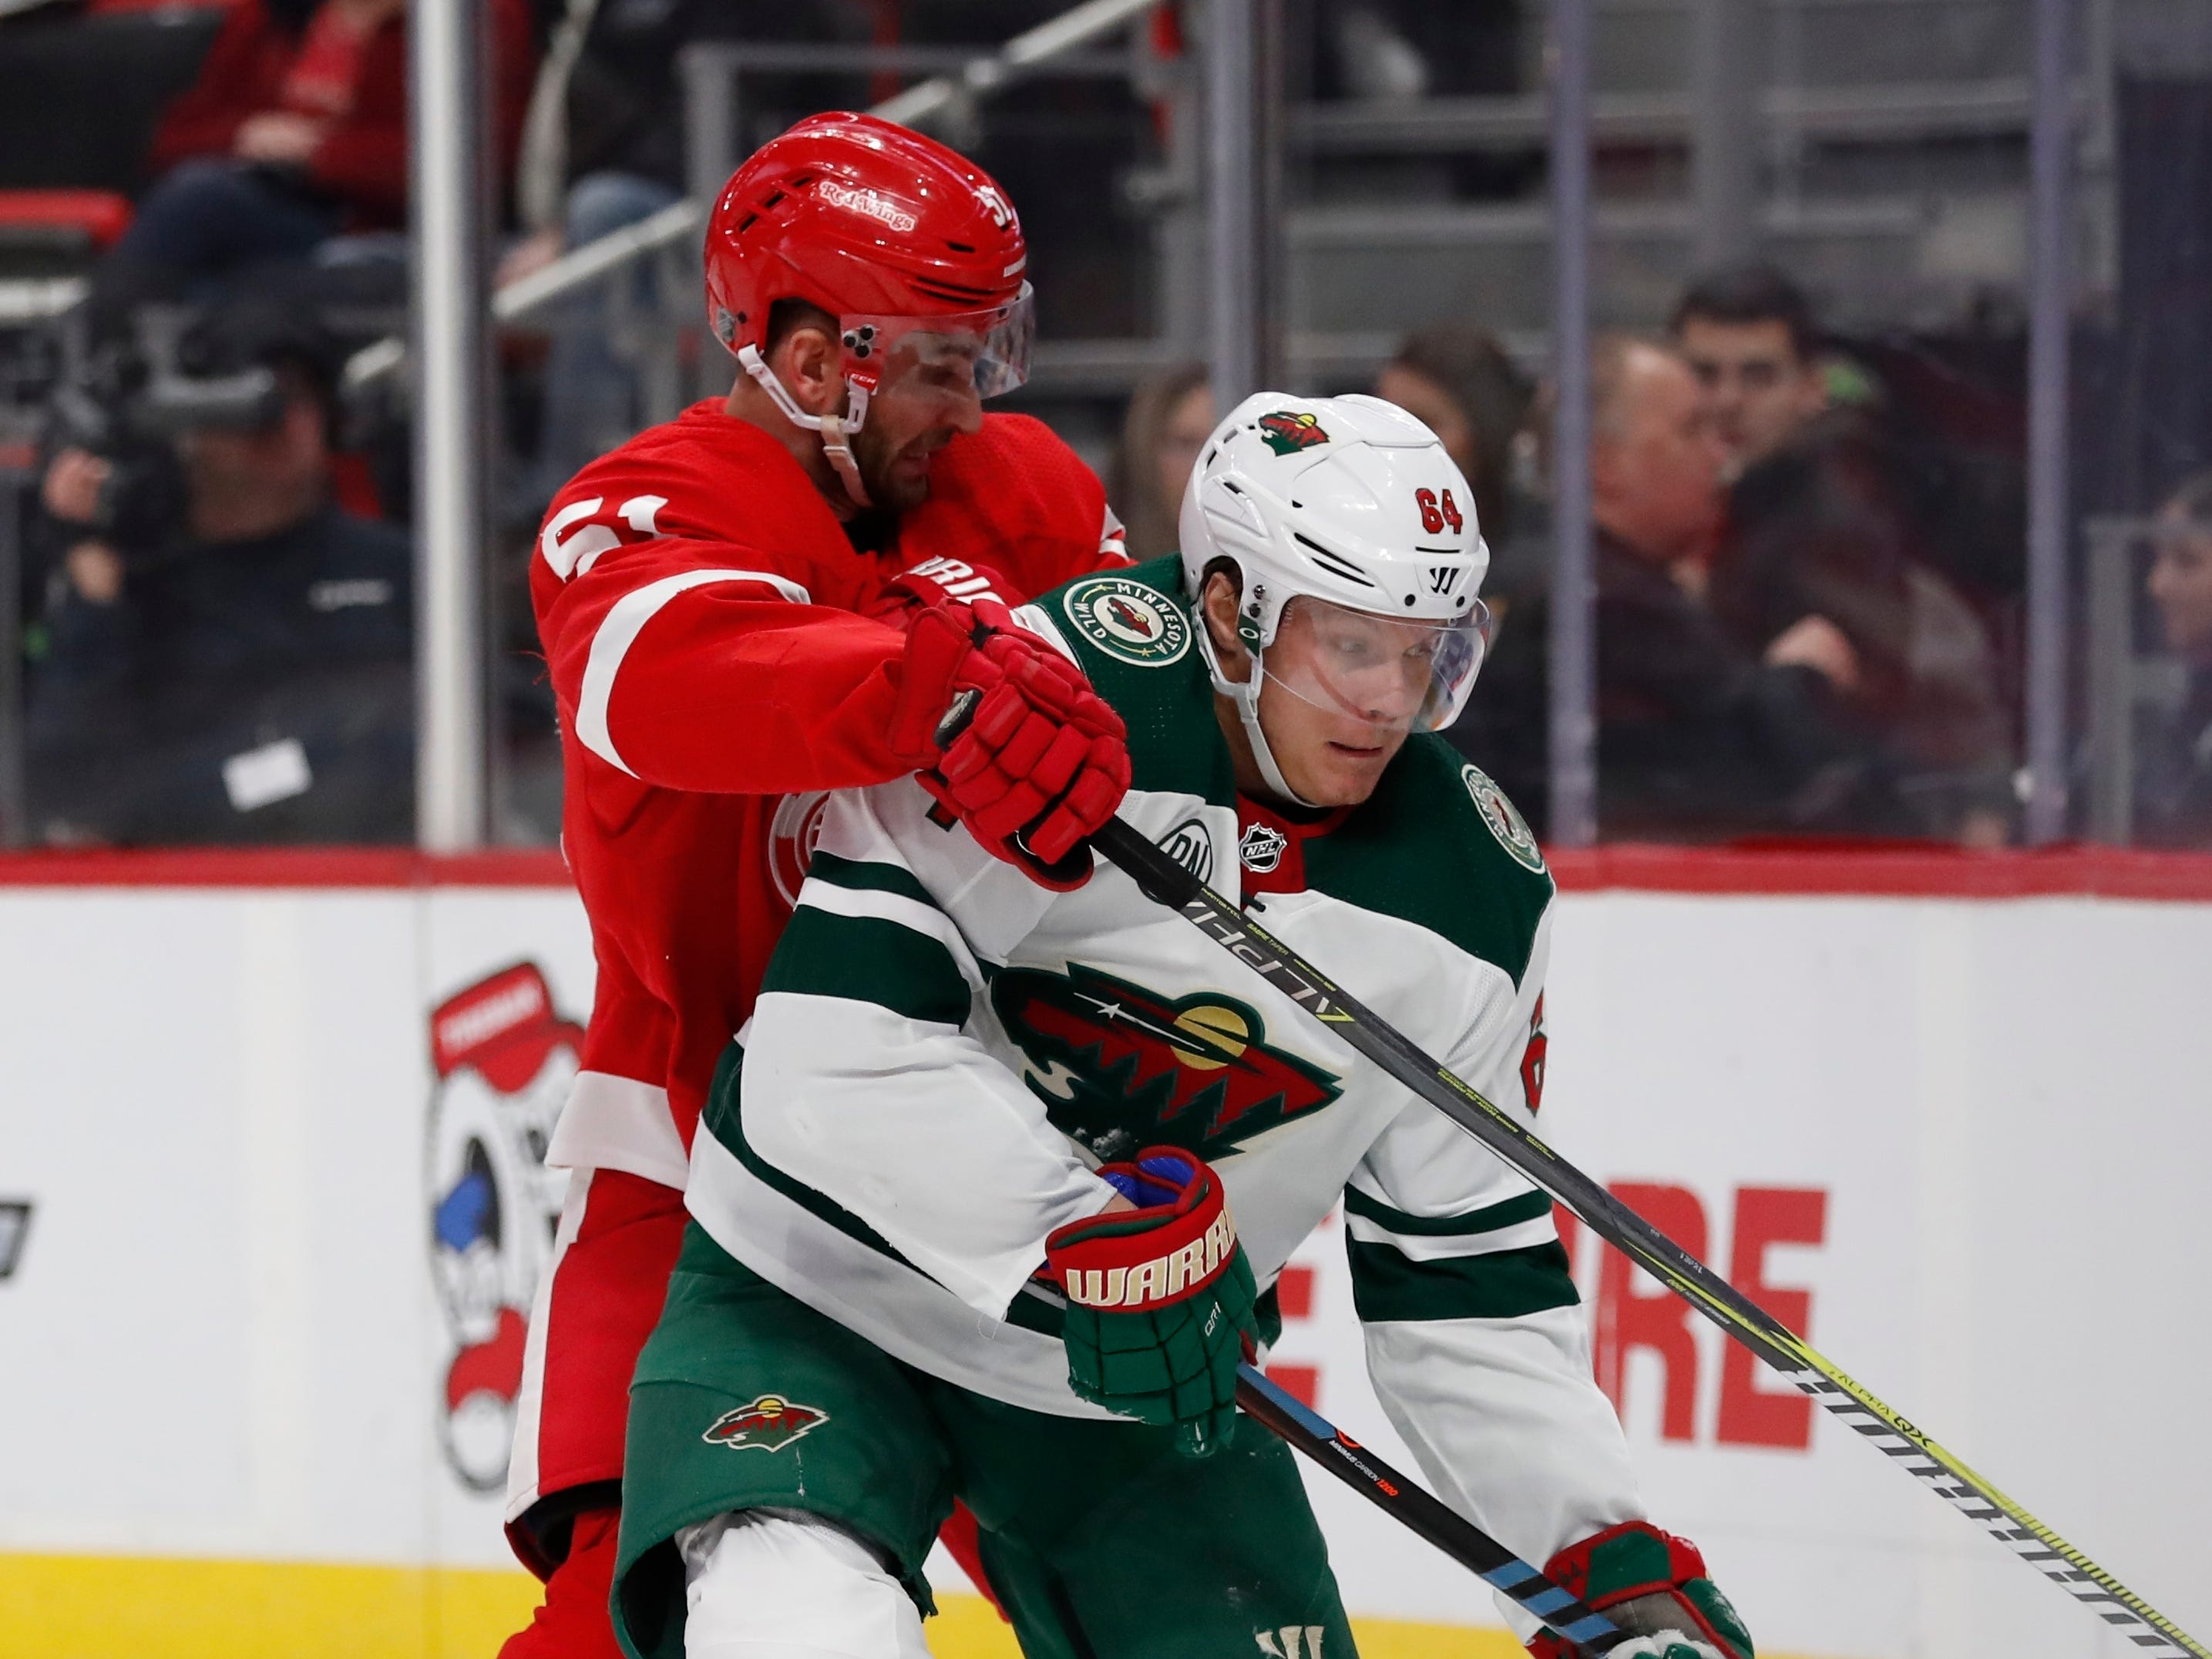 Detroit Red Wings center Frans Nielsen (51) checks Minnesota Wild right wing Mikael Granlund (64) during the second period of an NHL hockey game Friday, Feb. 22, 2019, in Detroit.